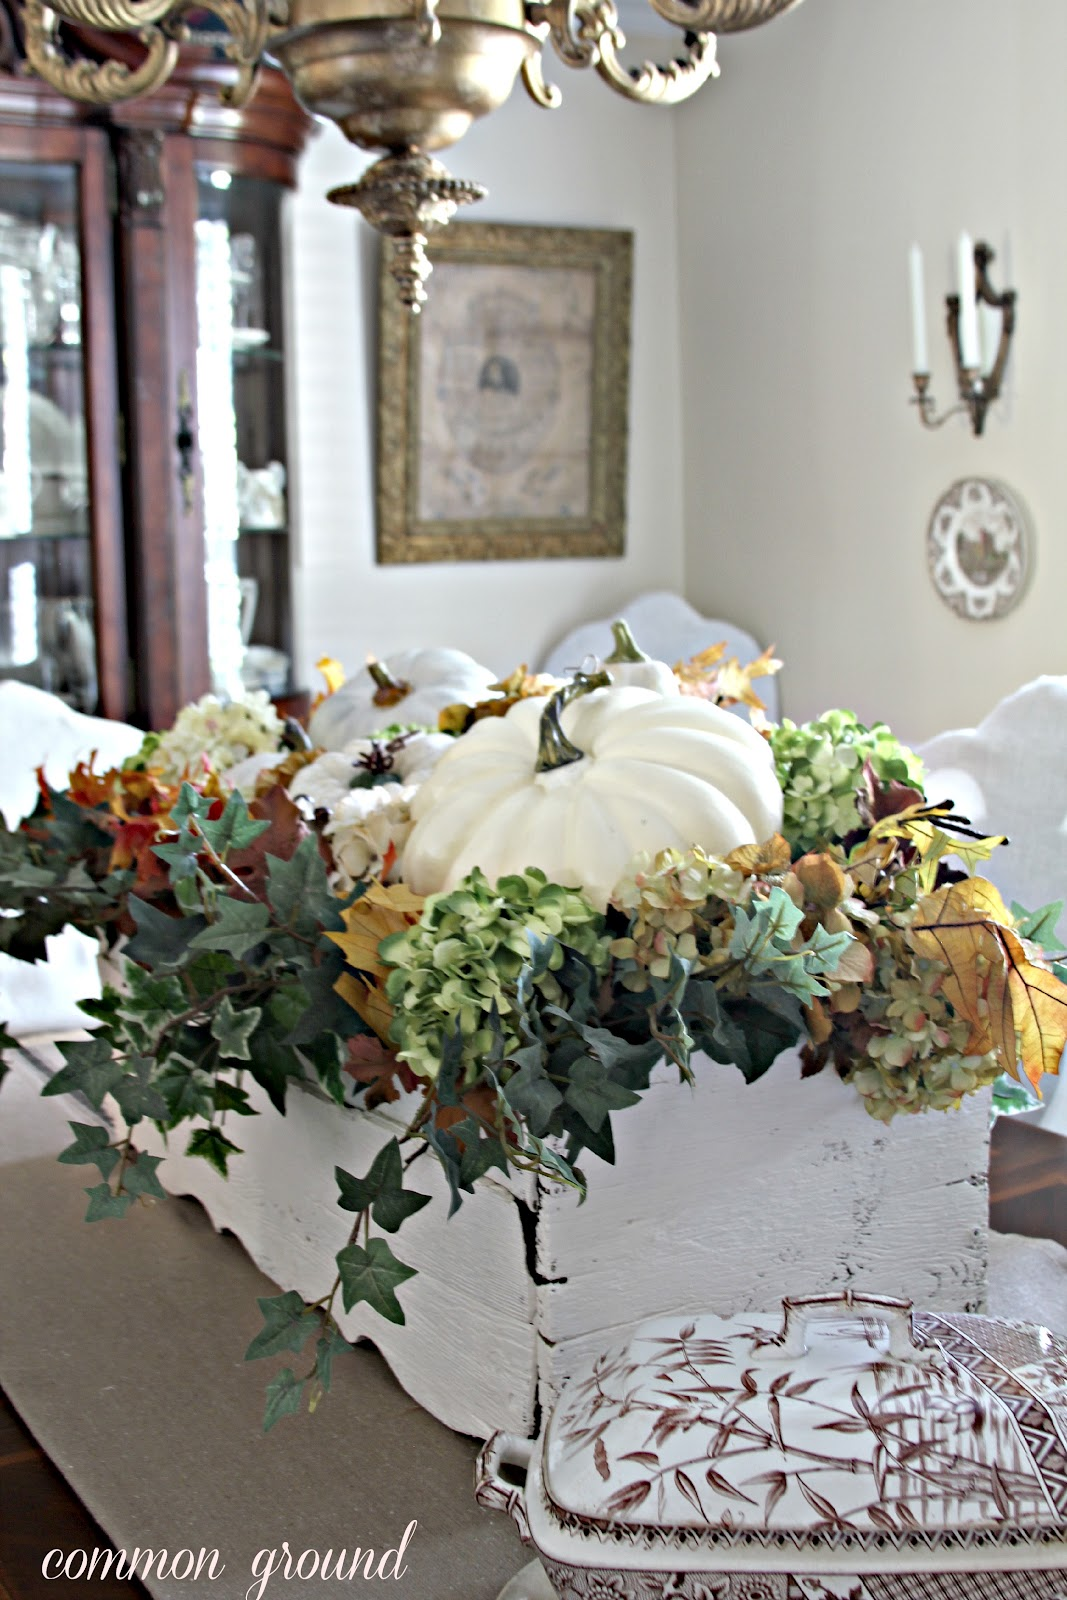 common ground : Window Box Centerpiece for Fall